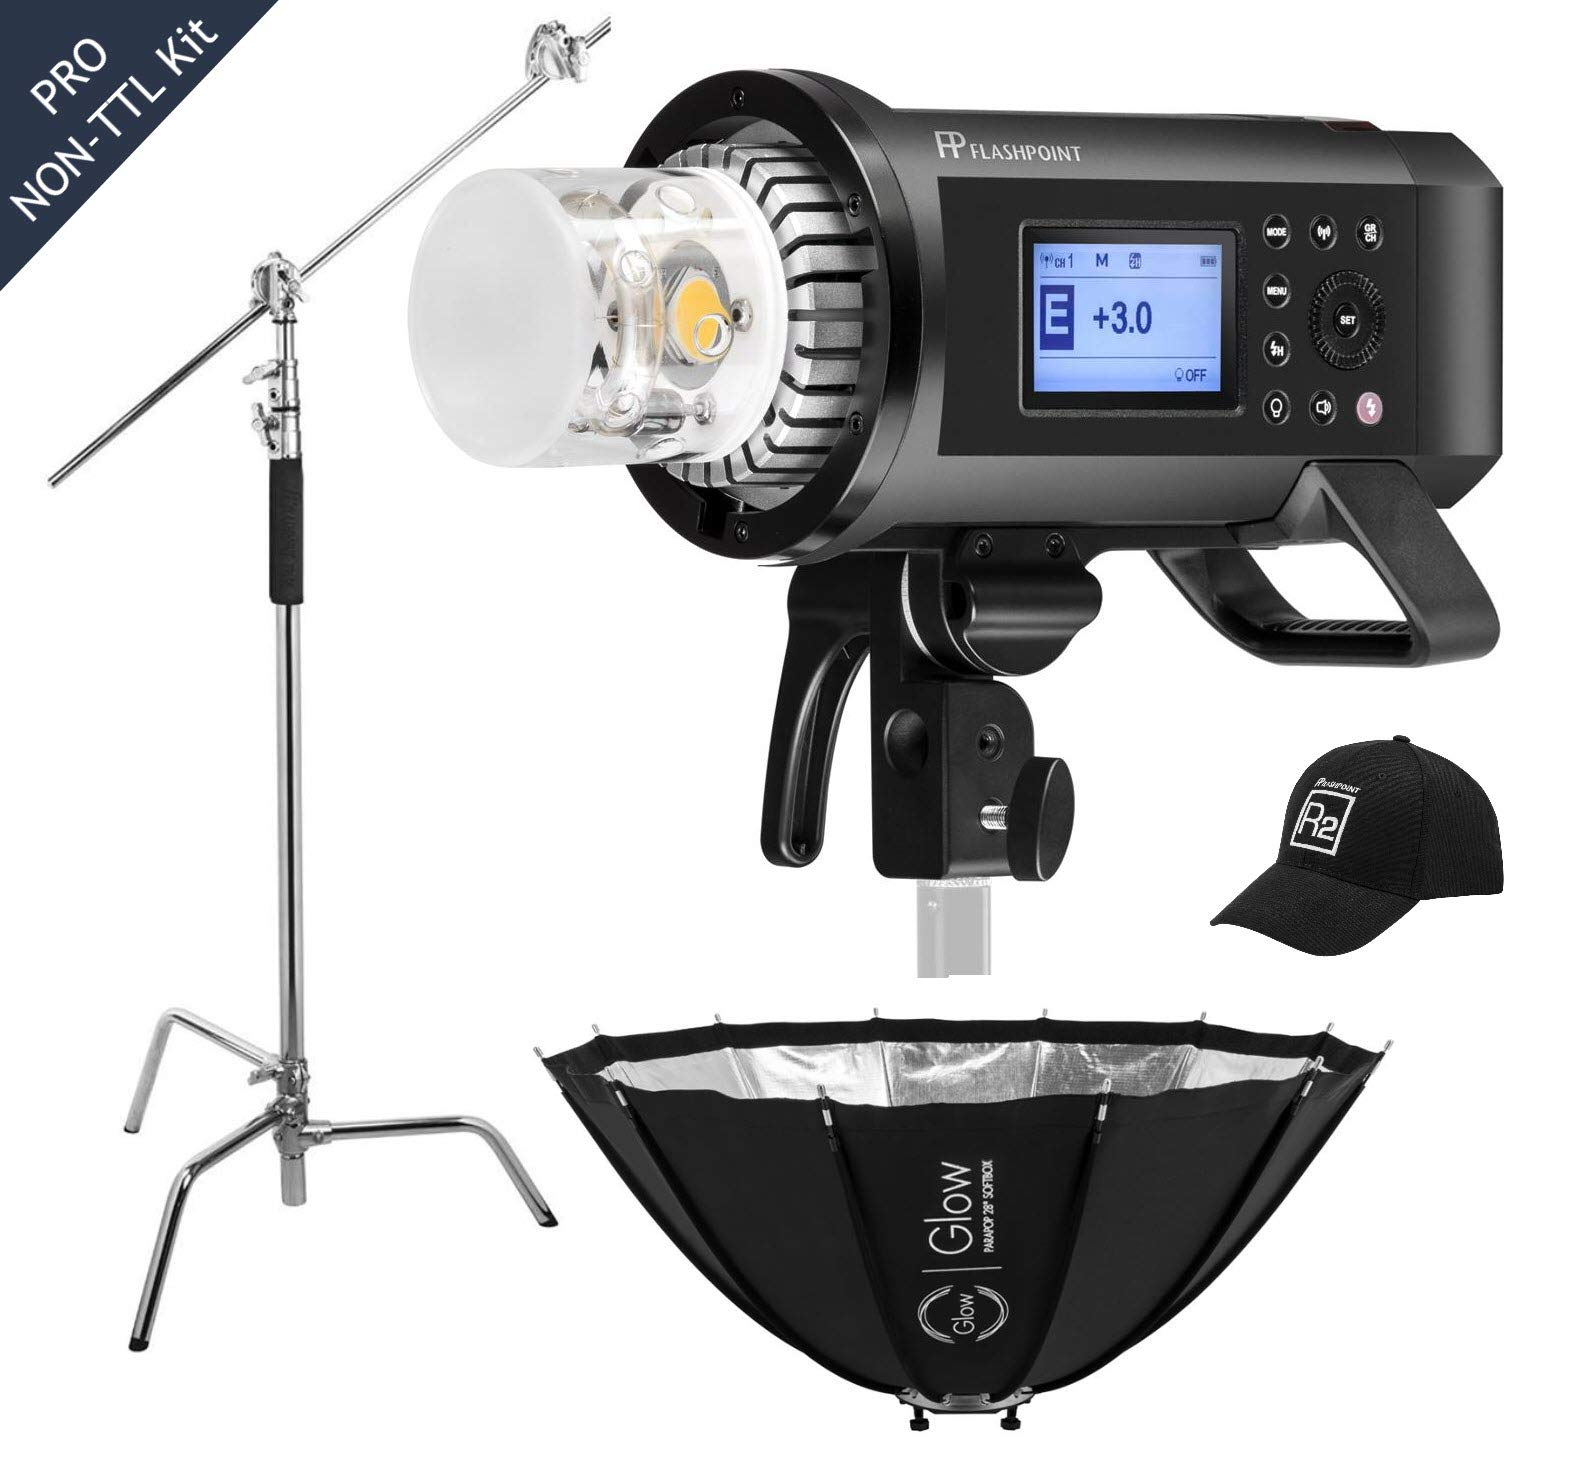 Flashpoint XPLOR 600PRO R2 HSS Battery-Powered Monolight Kit with Glow ParaPop and C-Stand. by Flashpoint (Image #1)